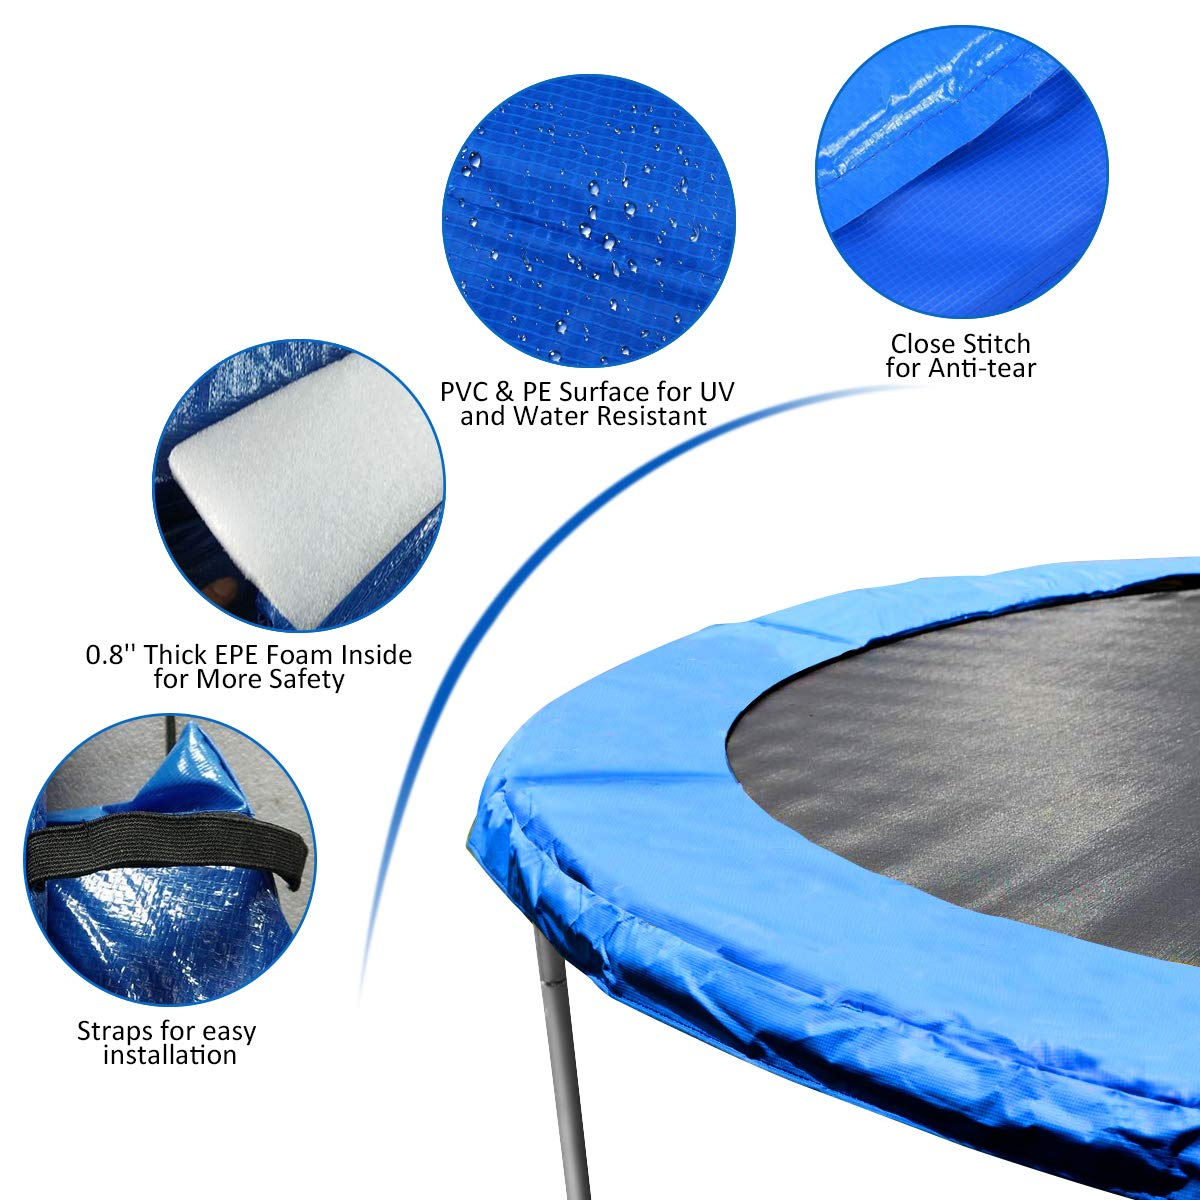 Giantex Trampoline Pad, Exercise Fitness Gymnastics Trampoline,Trampoline Pad Replacement Bounce Frame, Edge Cover Springs Protection Pad, Rebounder Trampoline (Blue, 14 ft) by Giantex (Image #4)